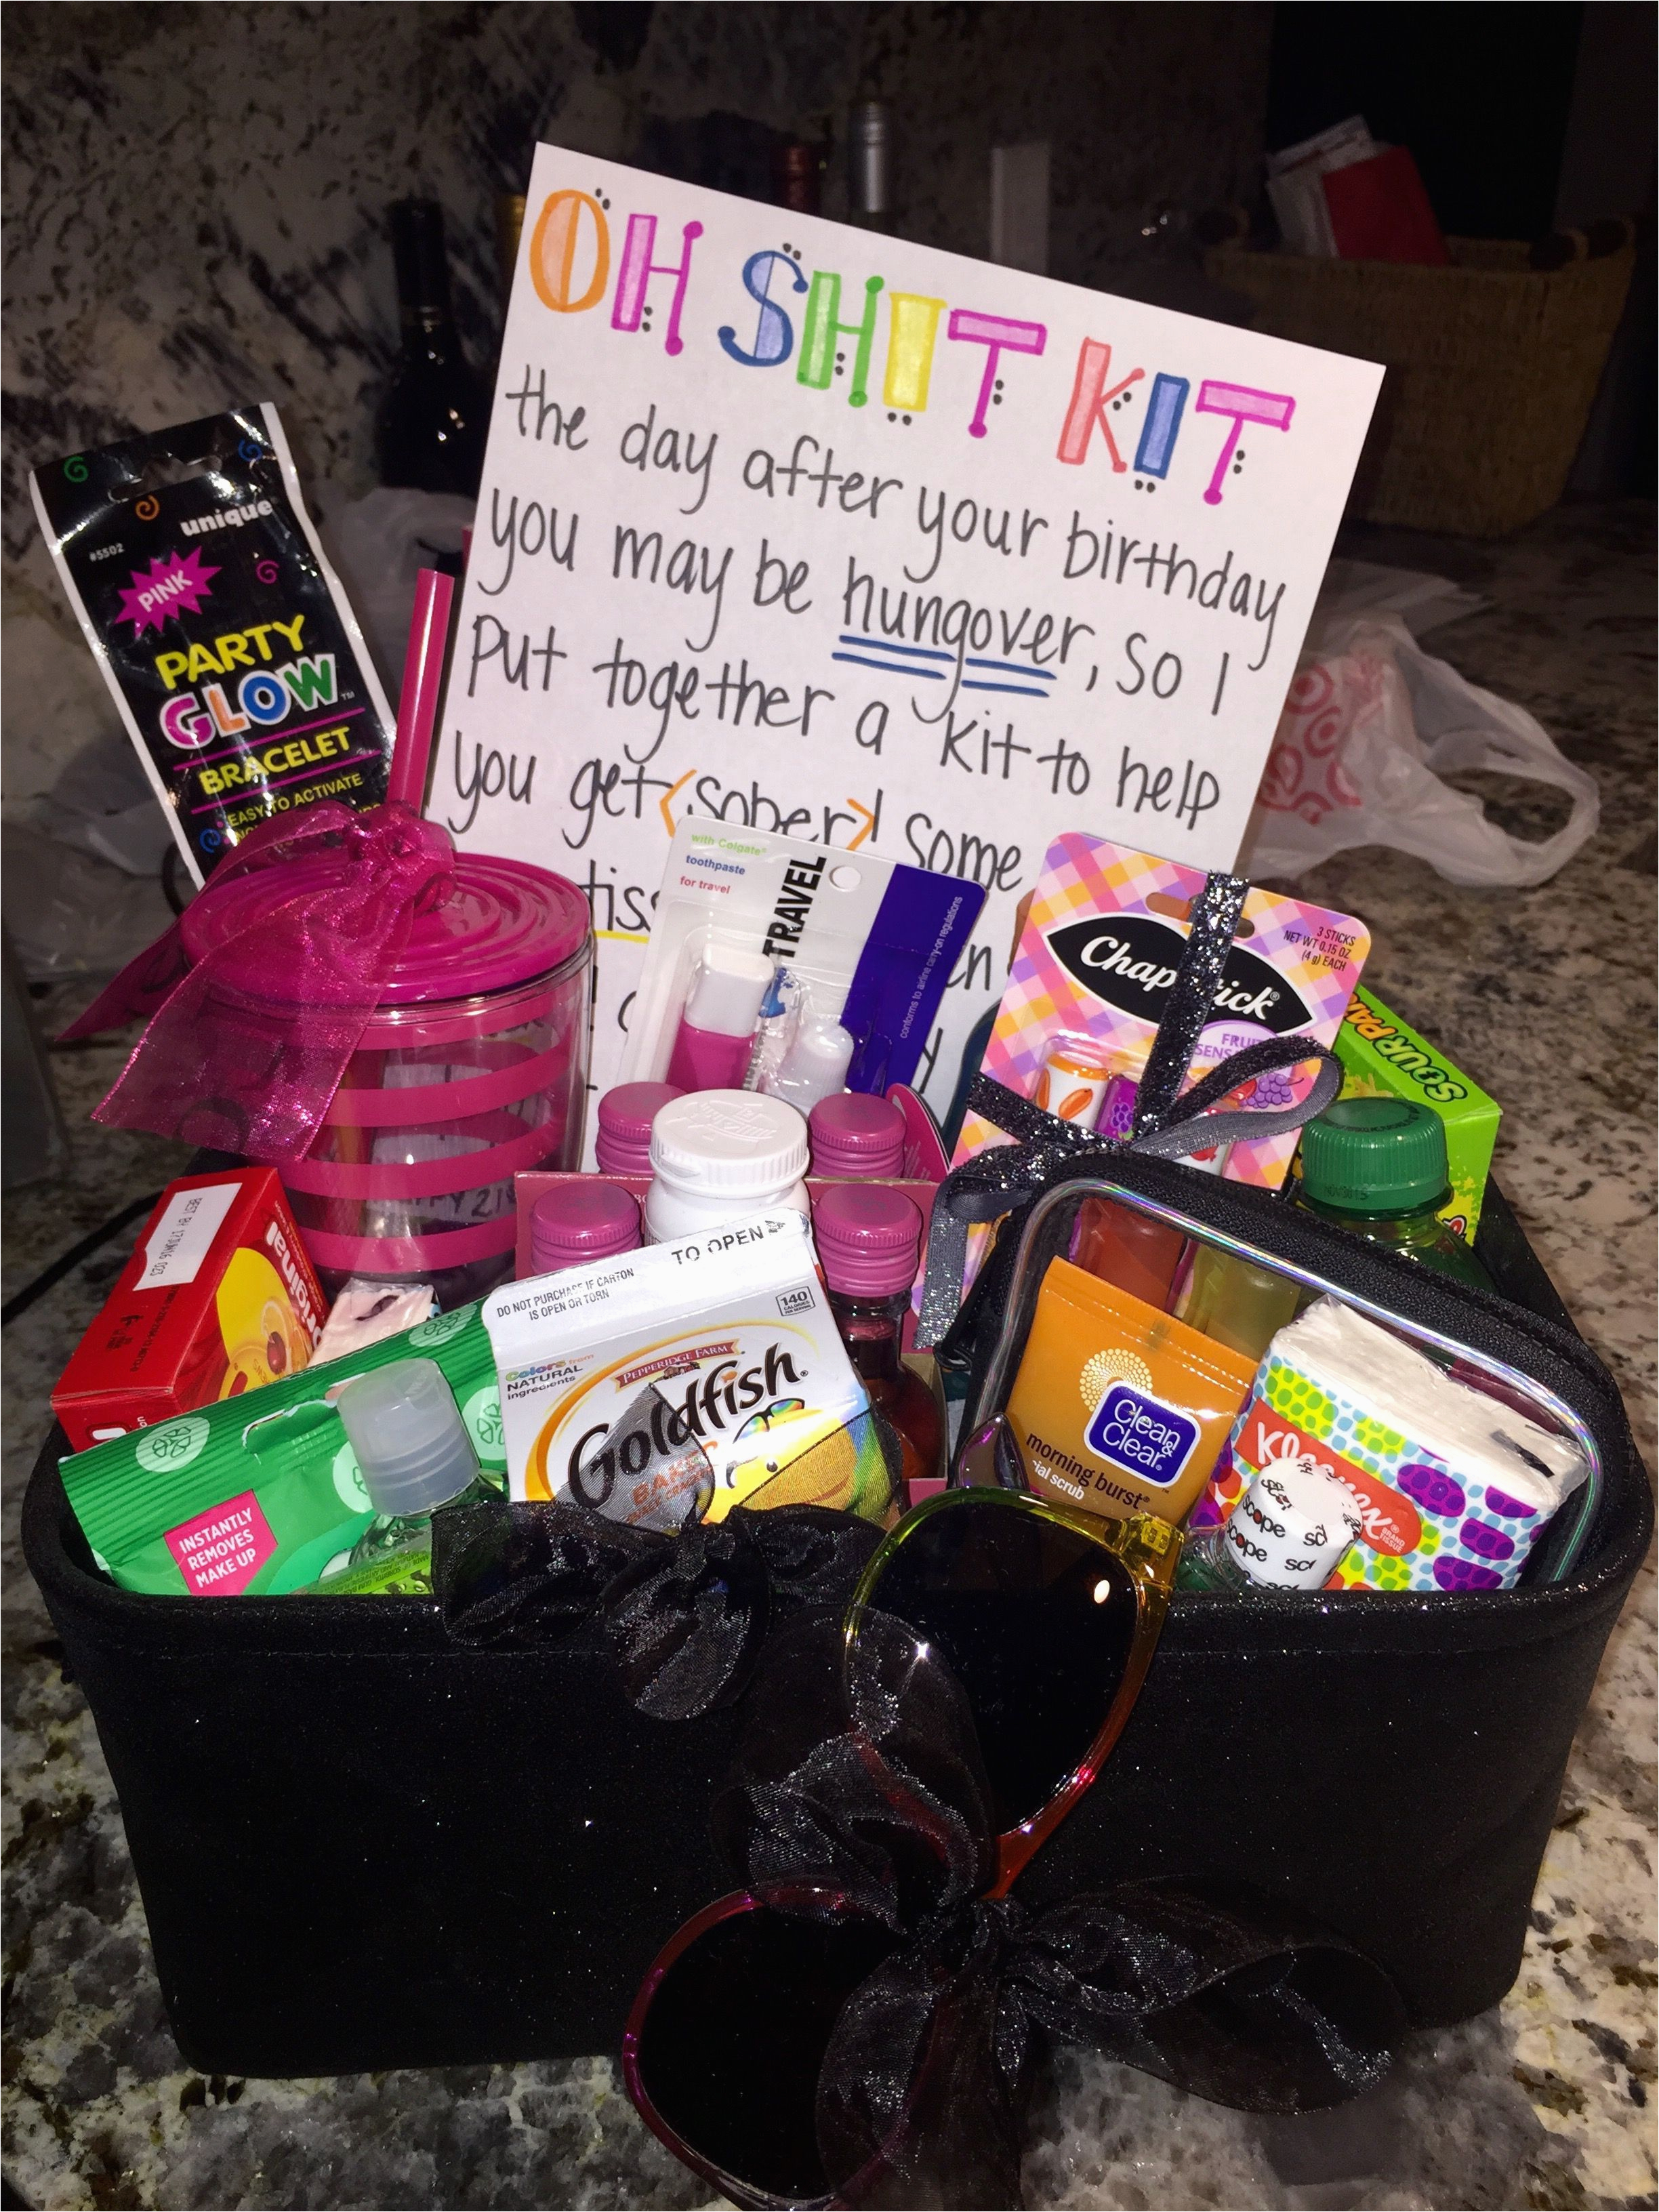 Cute Birthday Gift Ideas For Her 21st Oh Shit Kit The Hangover & 97+ Cute Birthday Gift Baskets - Gifts To Get For A Teenage Girl 21 ...